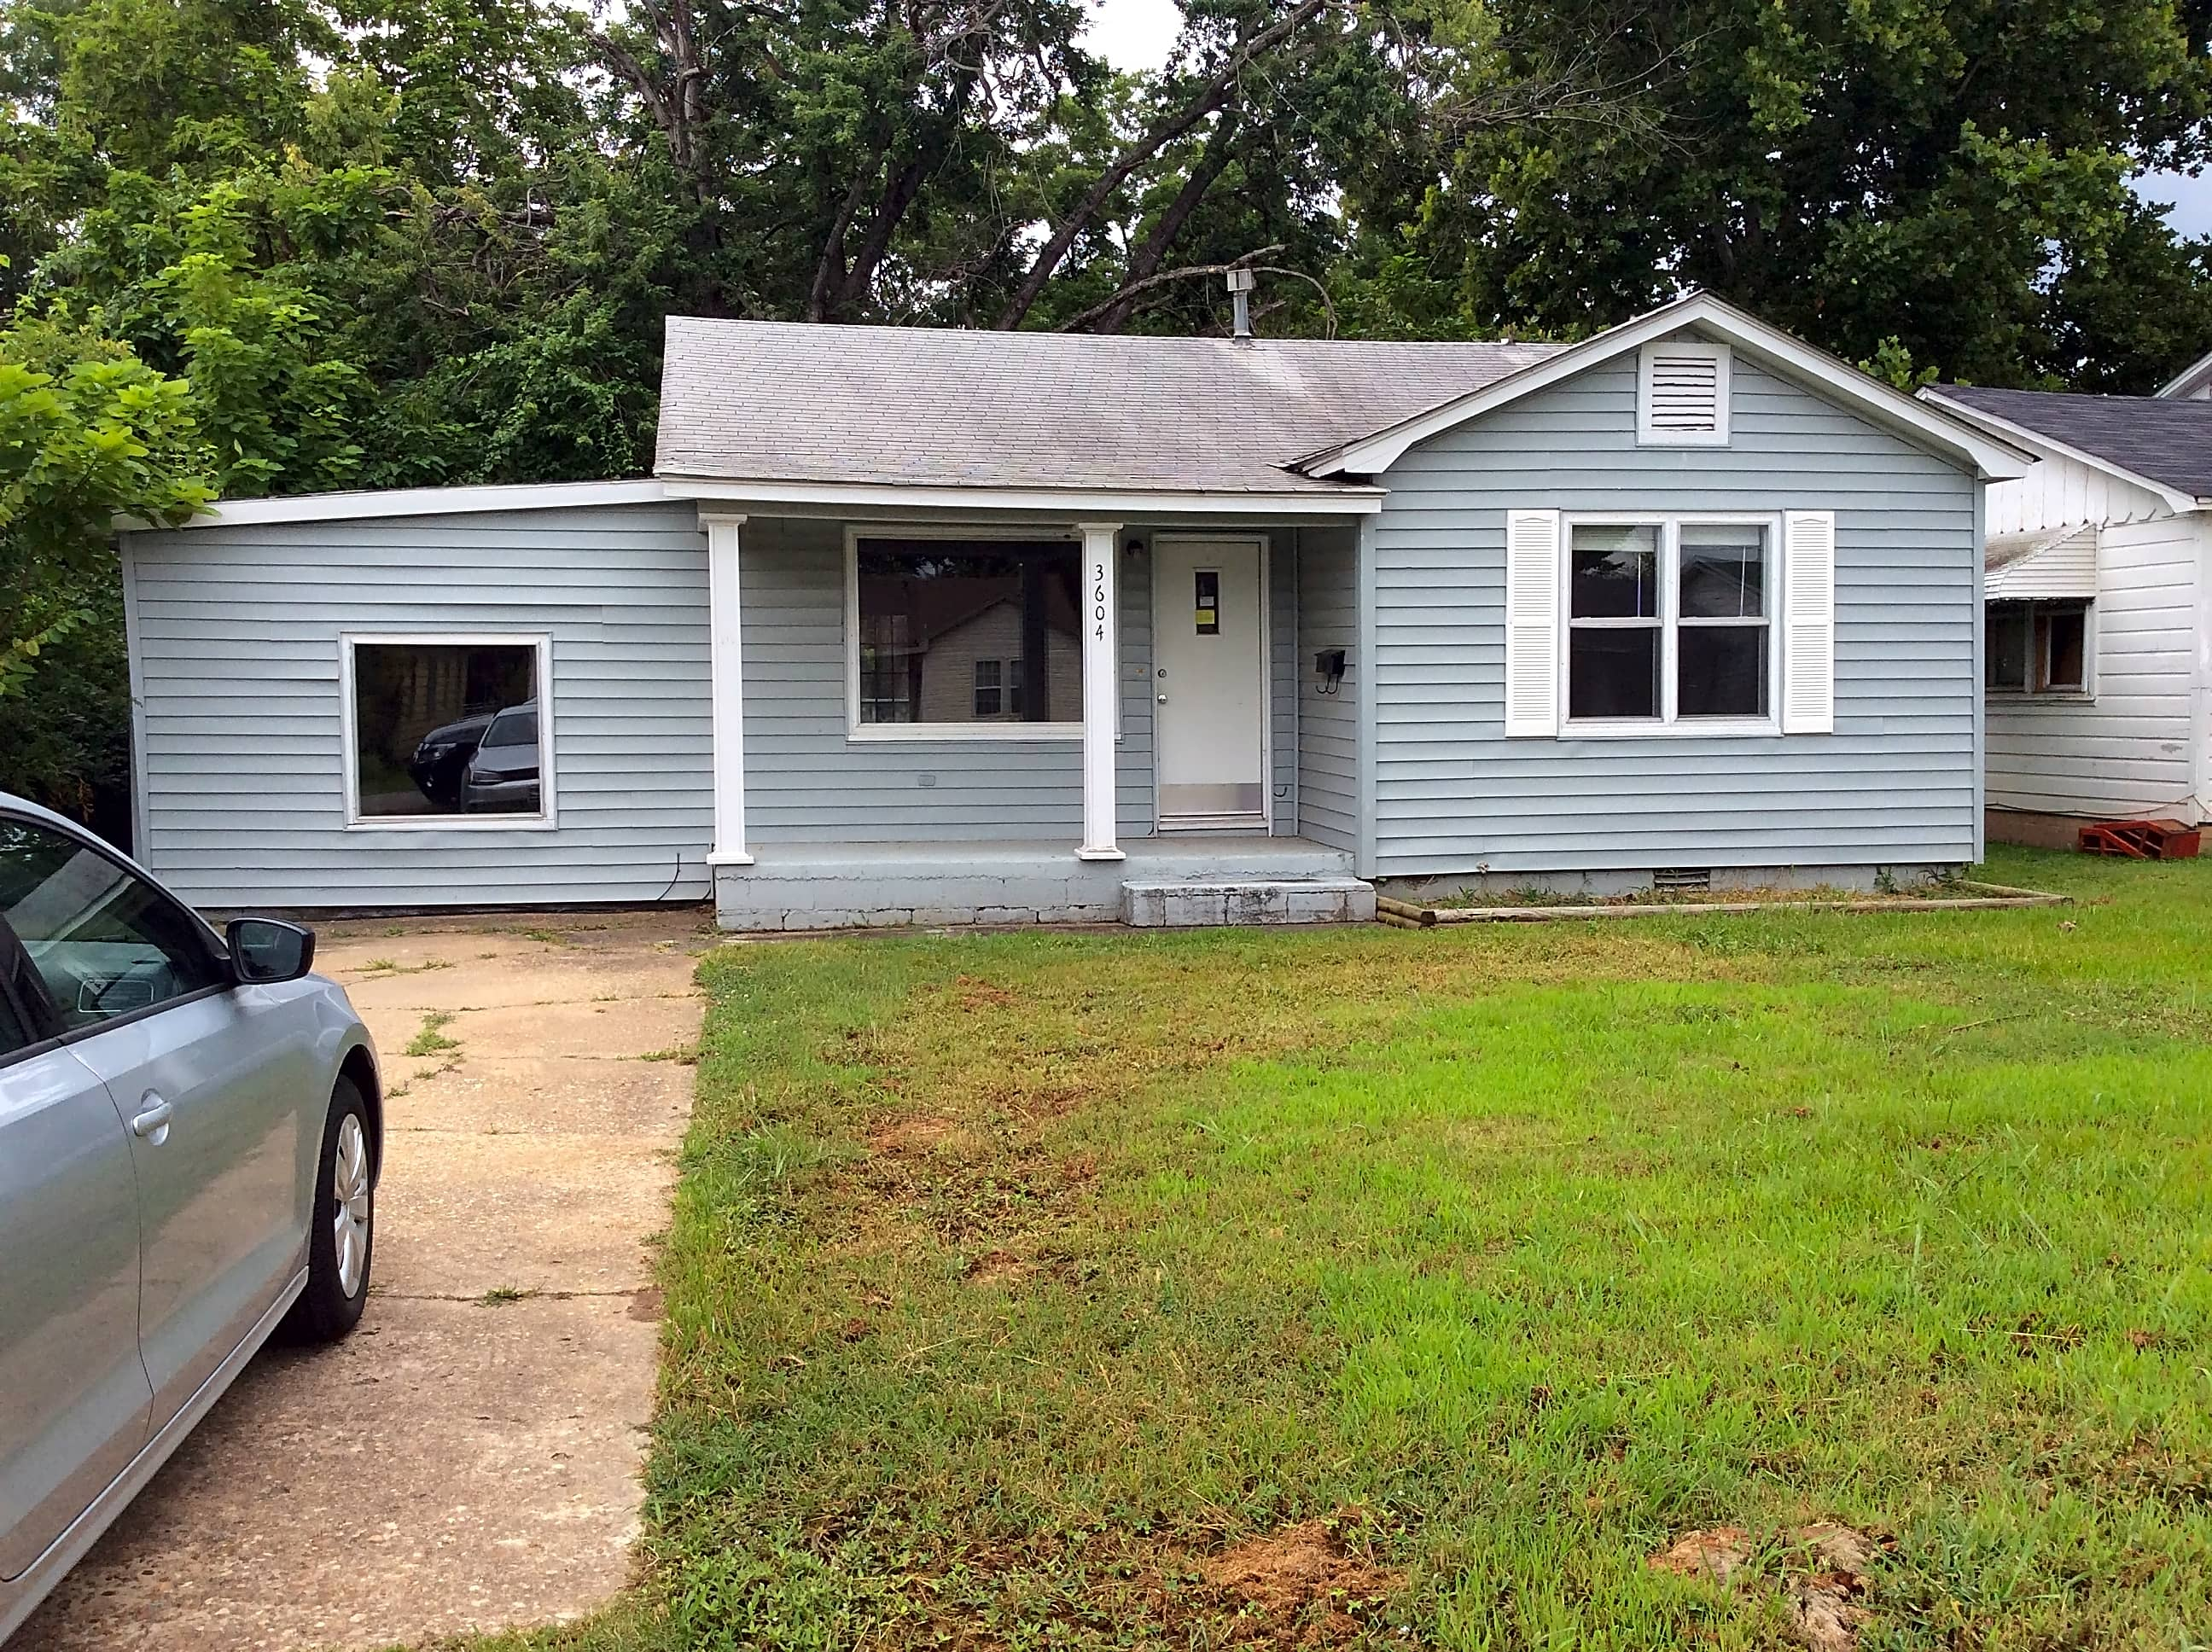 House for Rent in Fort Smith